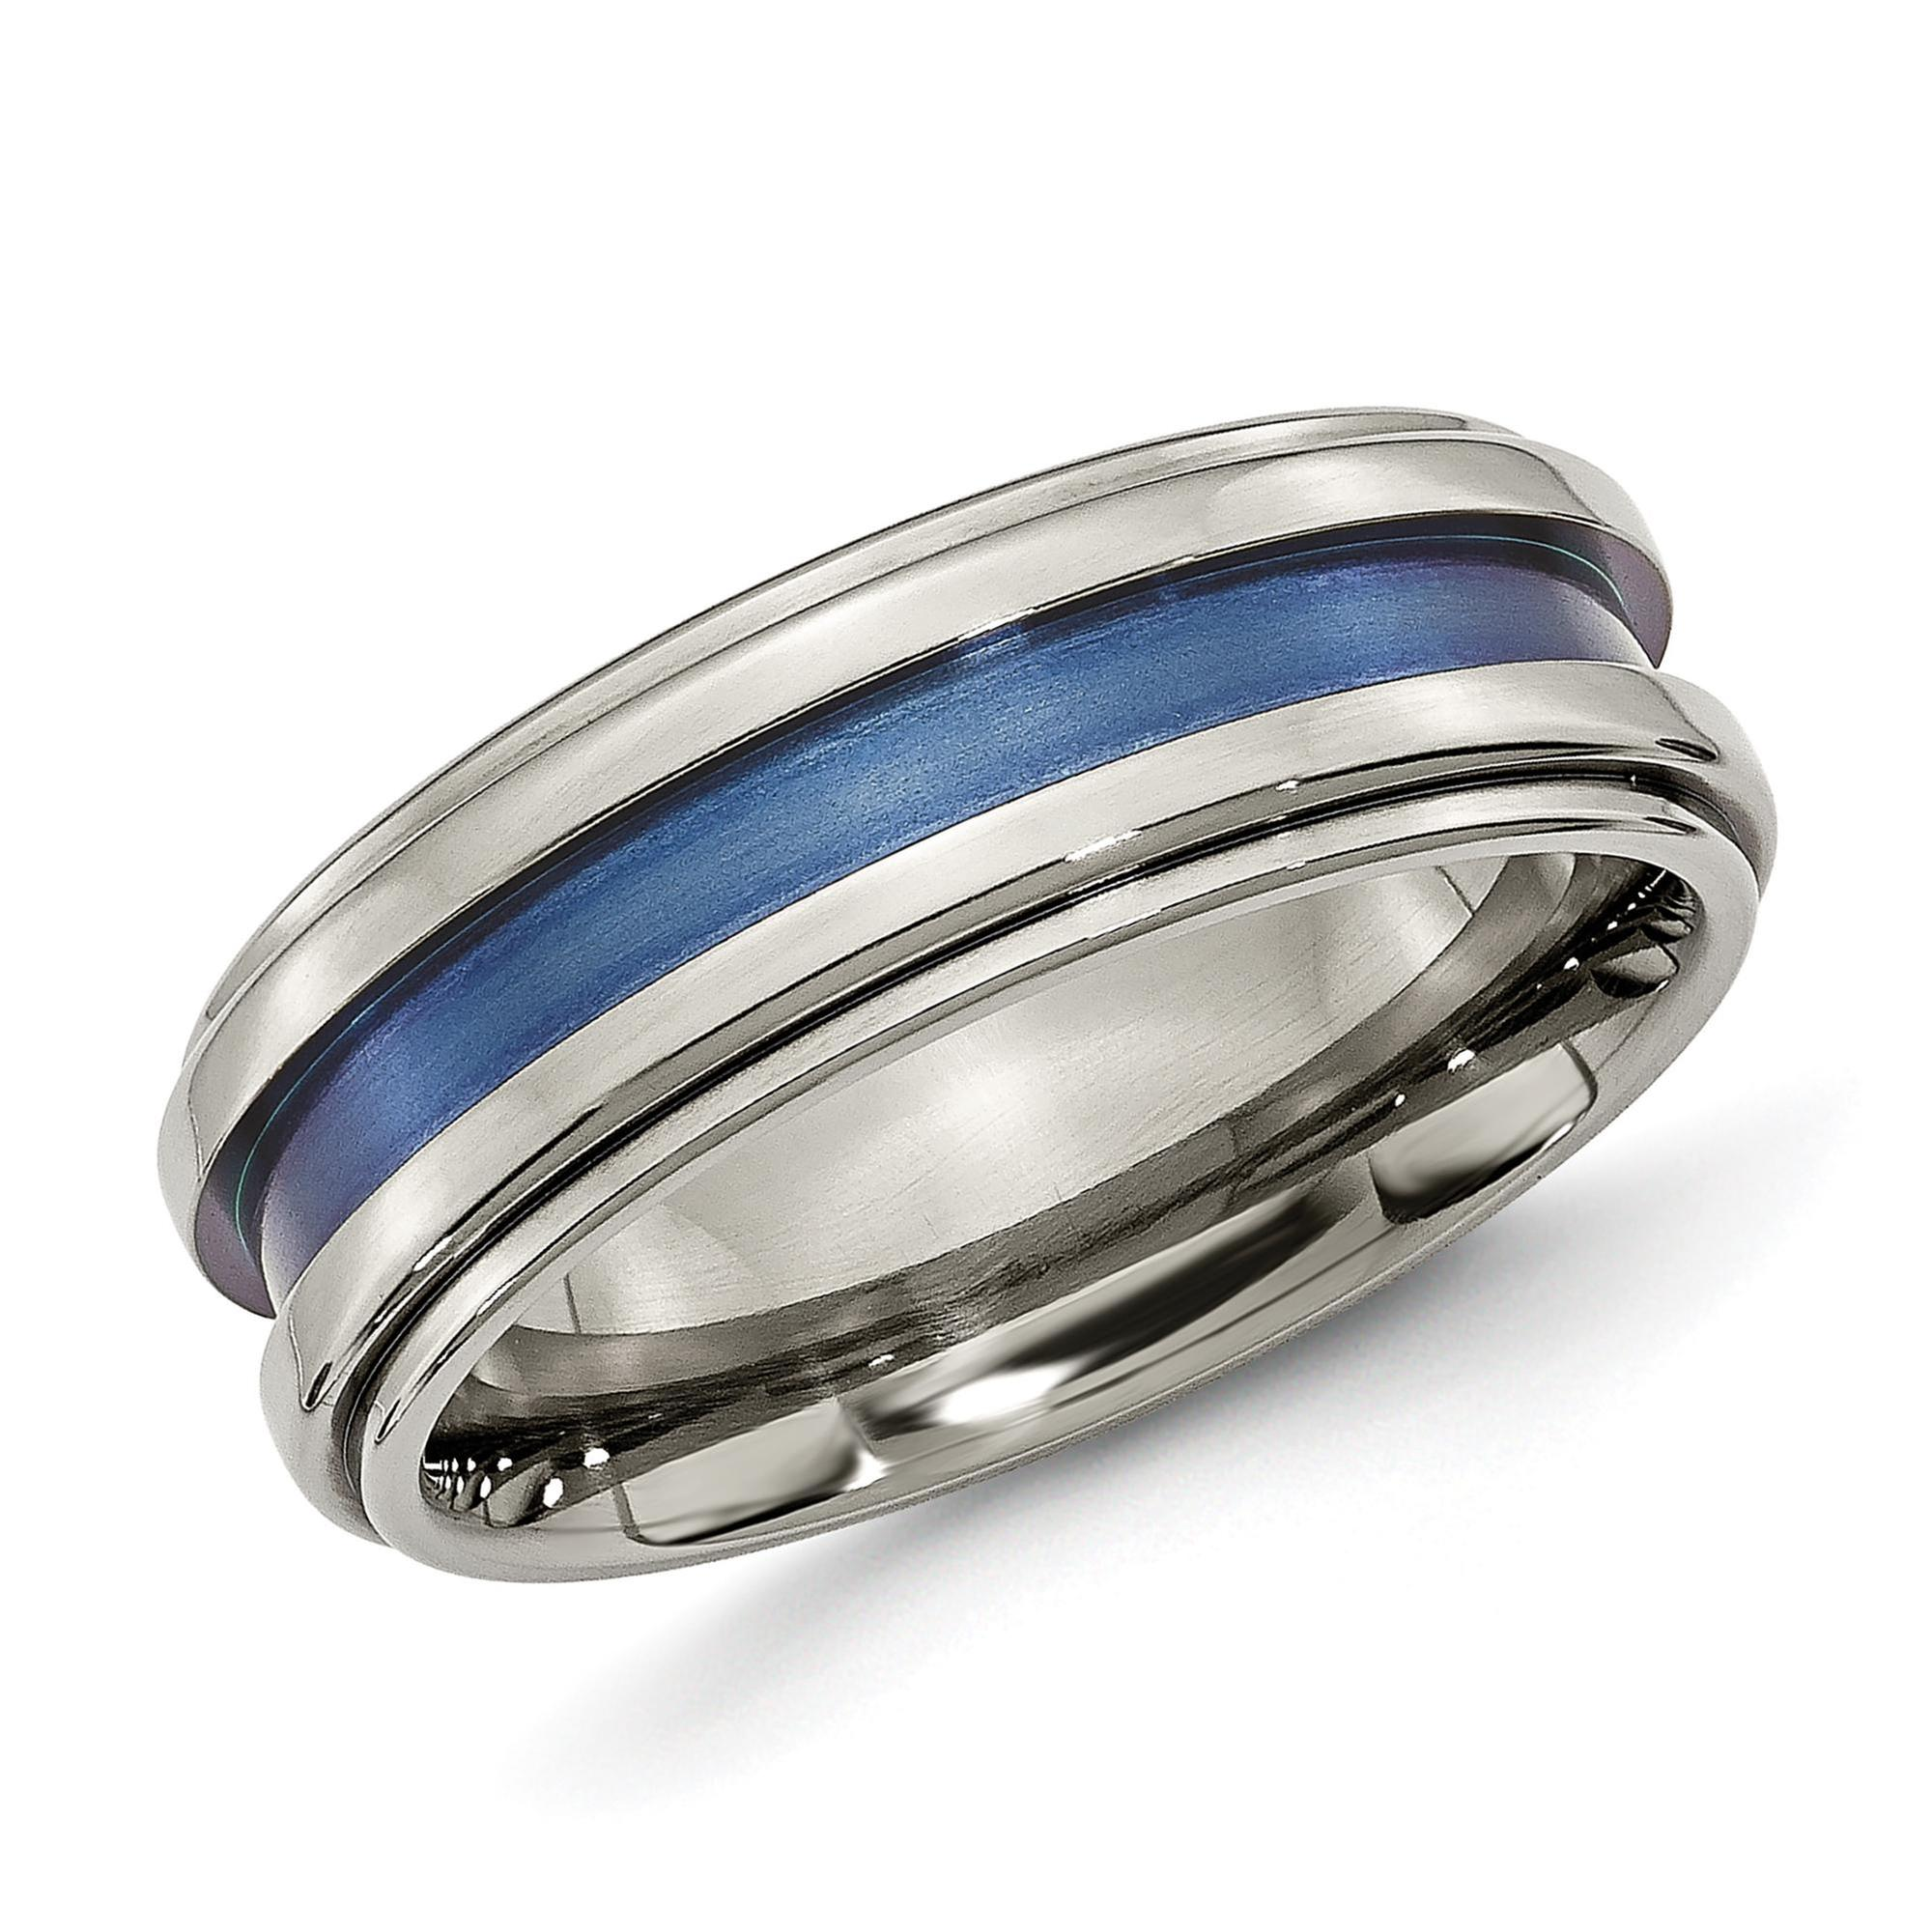 Men's Titanium 8mm Blue Inlay Grooved Band